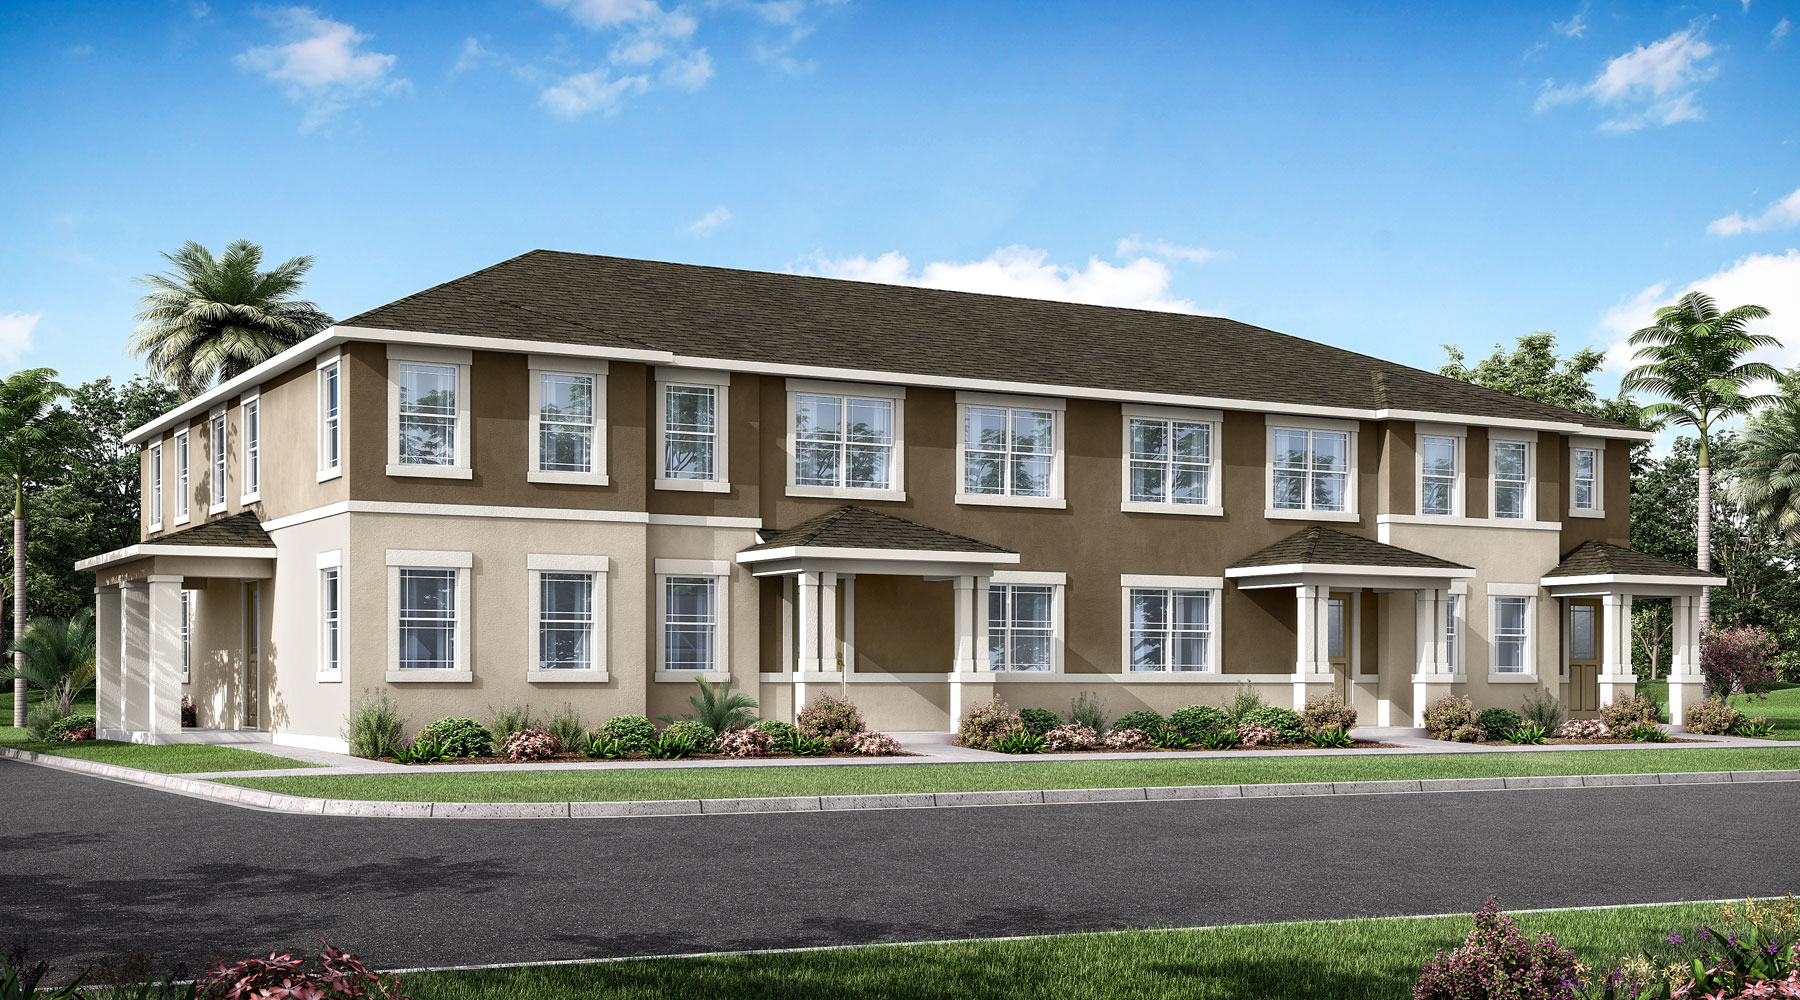 Aurora Plan TownHomes at Meridian Parks in Orlando Florida by Mattamy Homes